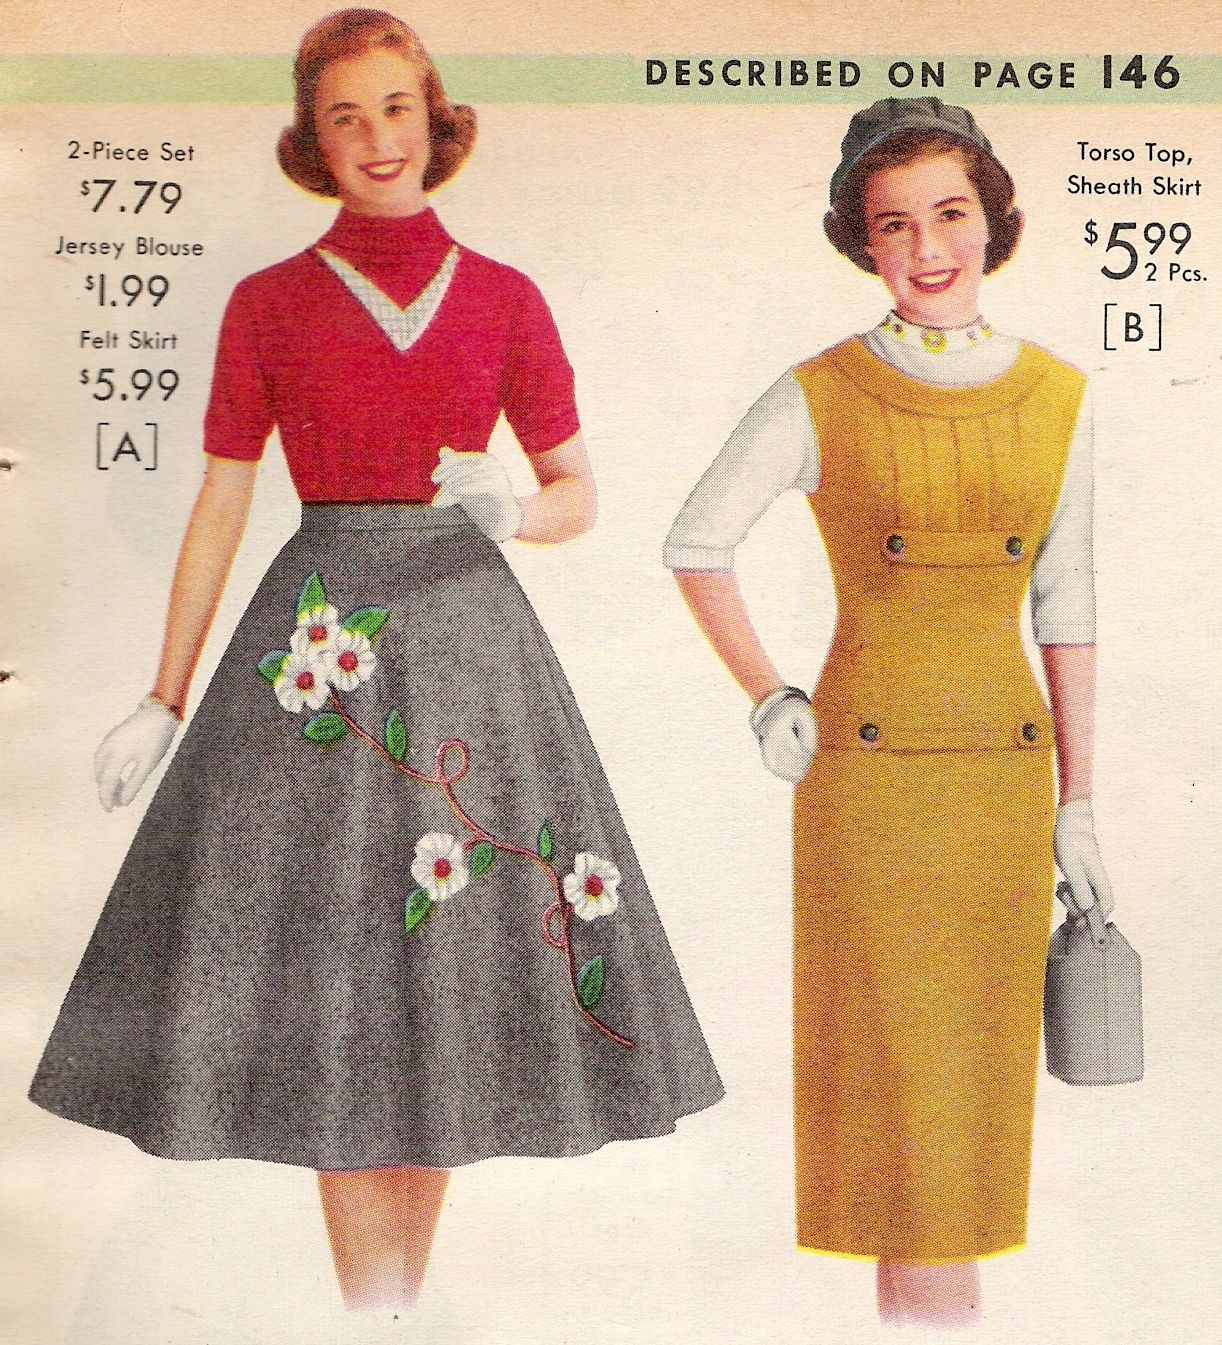 1950s Skirt Styles: Circle, Poodle, Pencil Skirt History